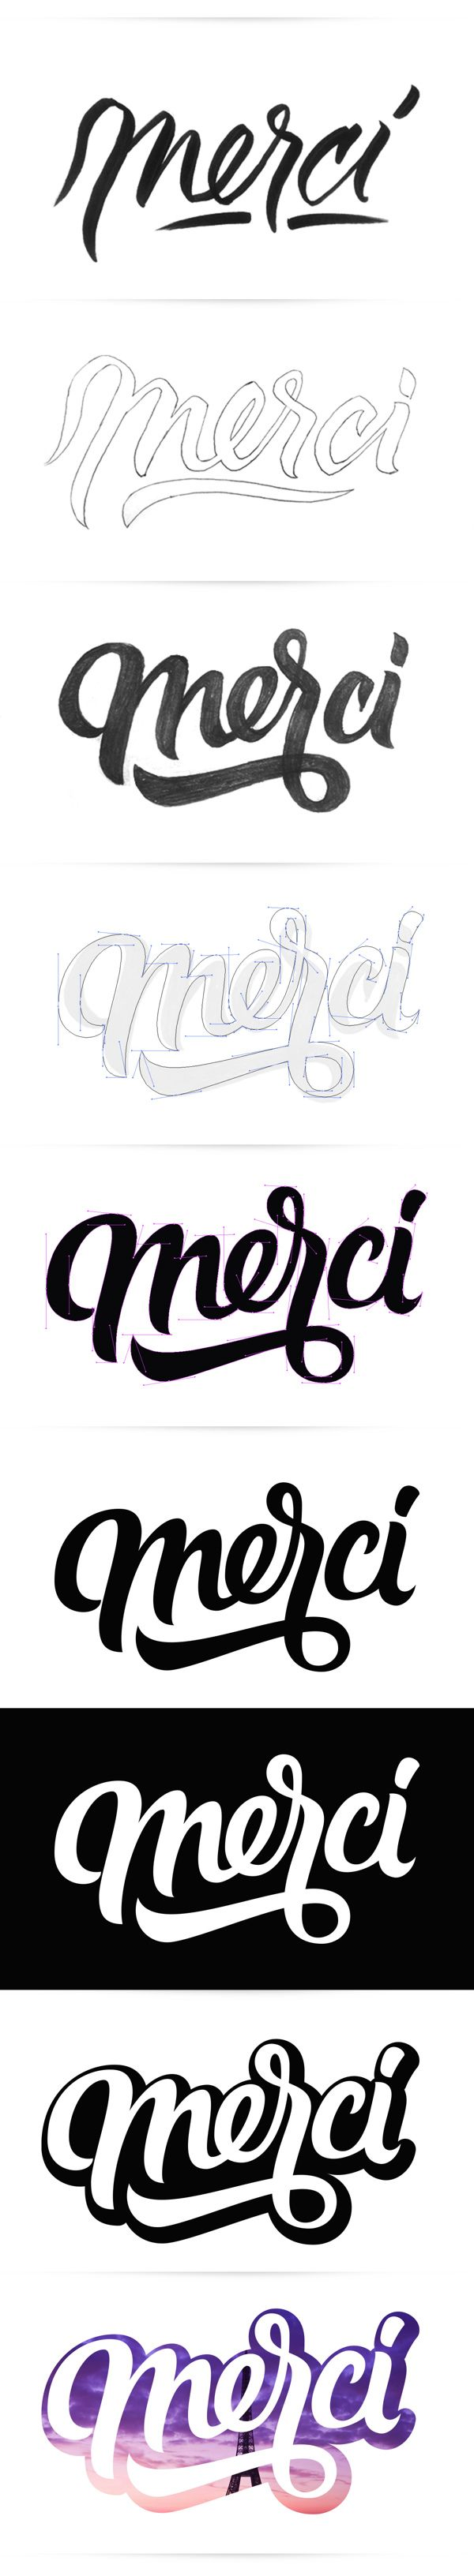 Merci by Oscar Montoya, via Behance